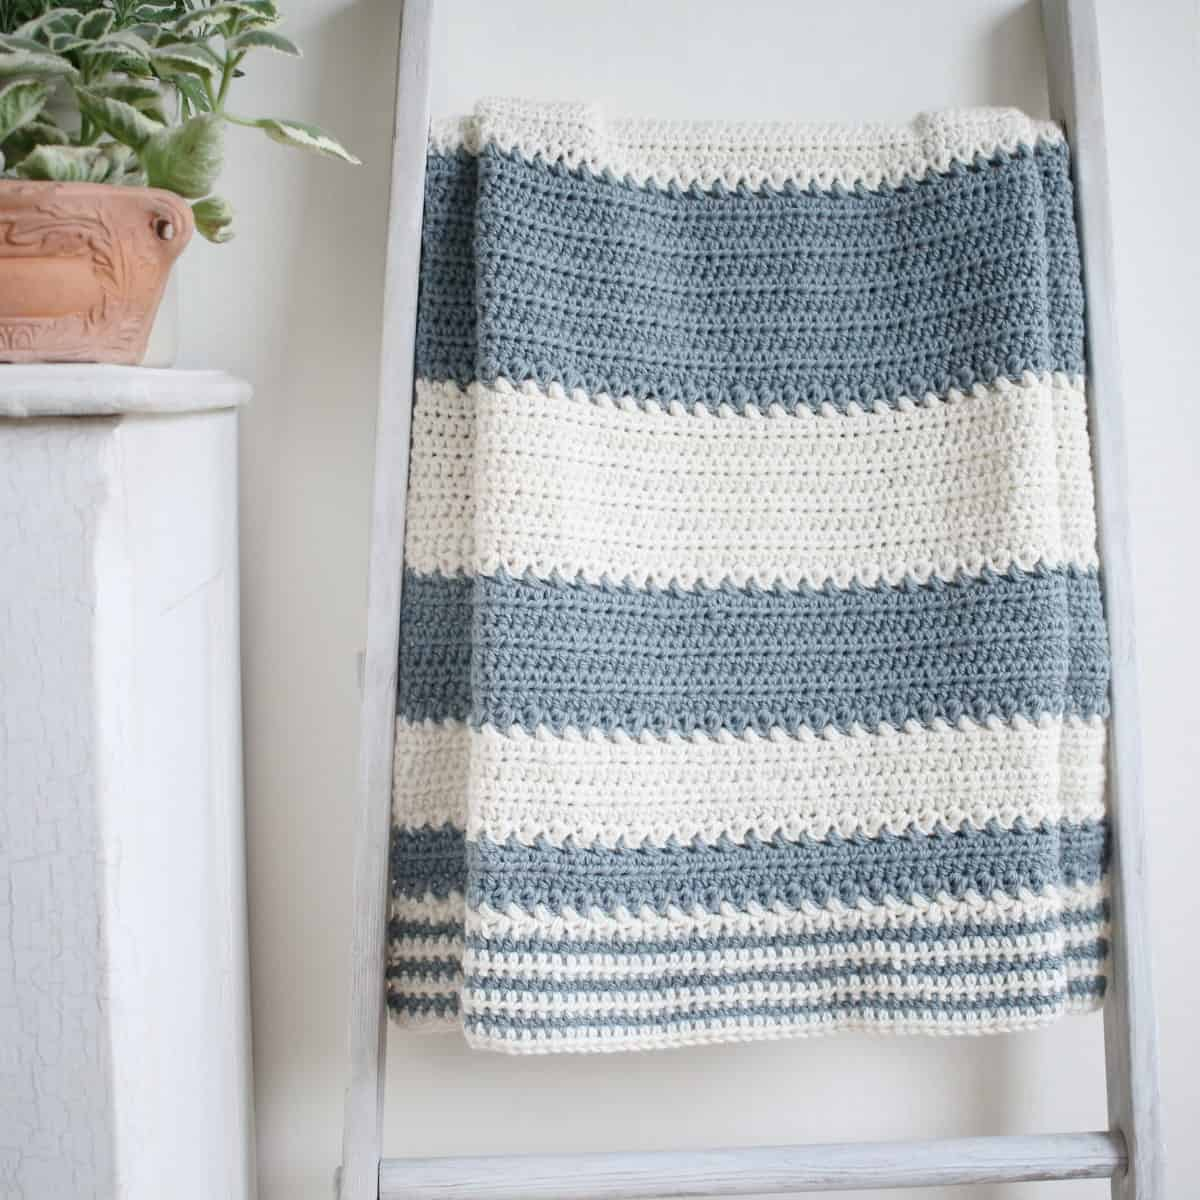 Blanket Crochet Pattern Free to Get You Warmer at Night Simple And Easy Striped Ba Blanket Crochet Pattern Crochet Life